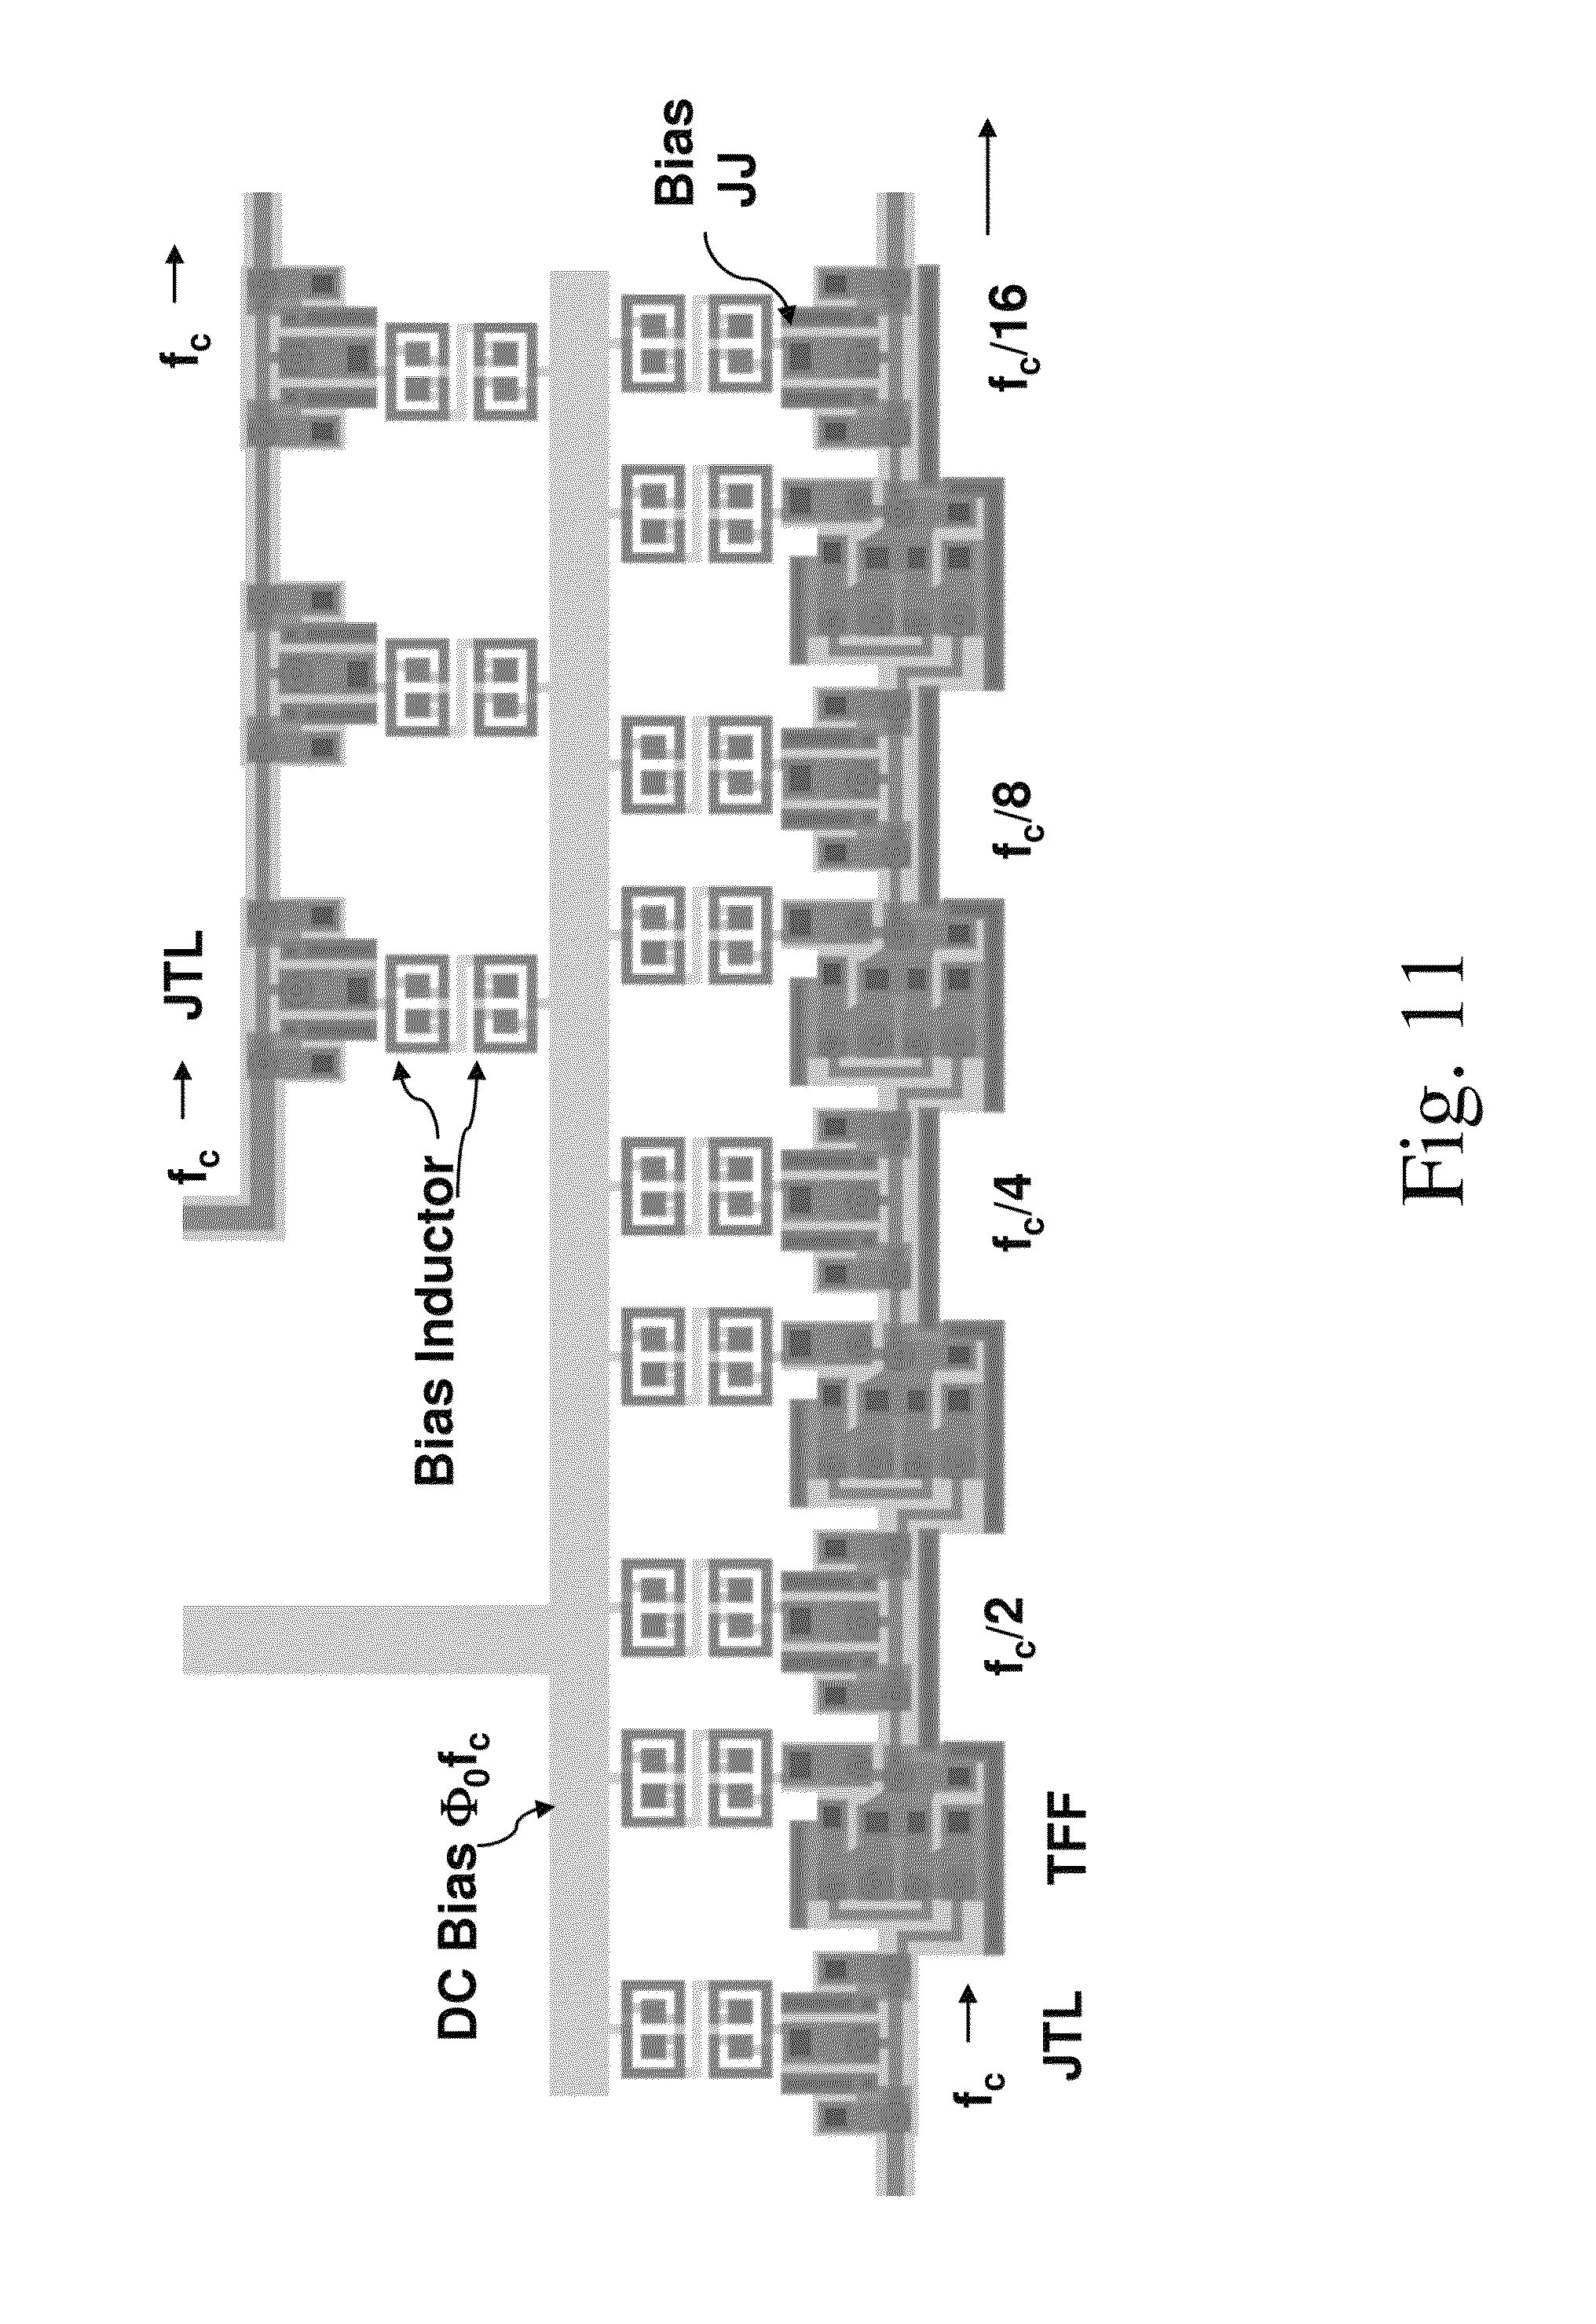 Patent Us8571614 Low Power Biasing Networks For Superconducting Once The Bias Is Set This Circuit Will Supply A Constant Current To Drawing